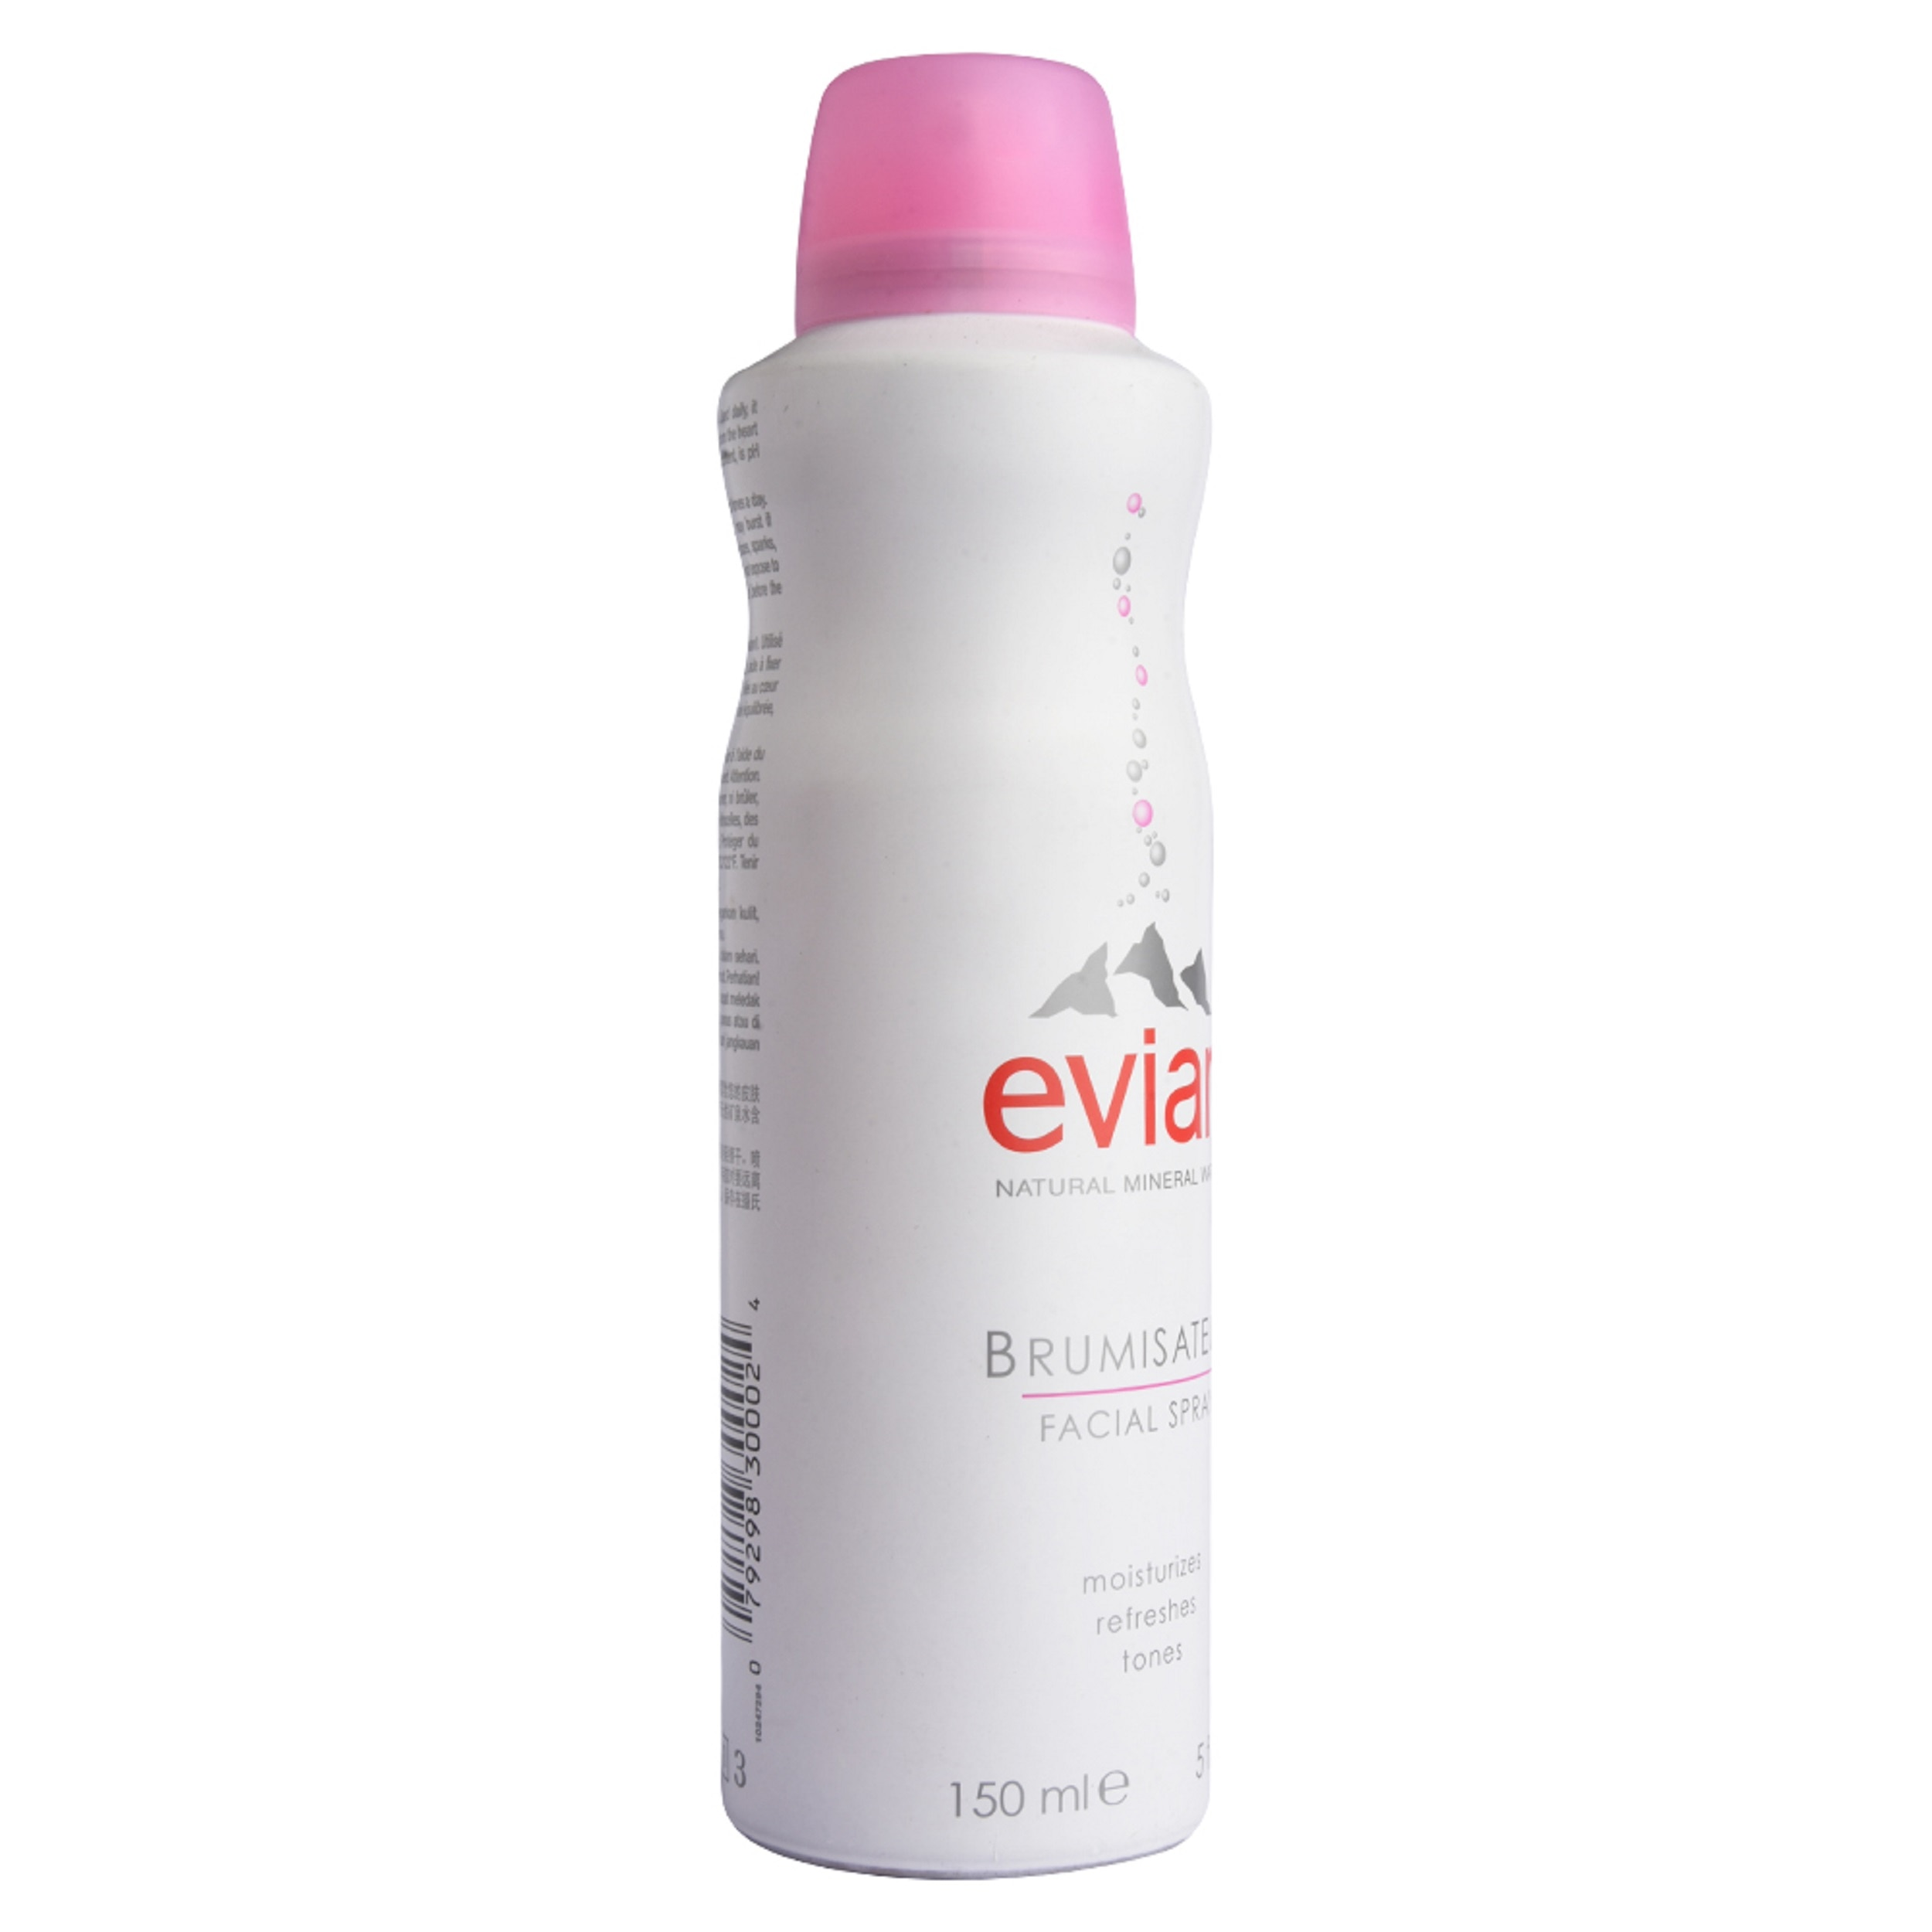 EVIANBrumisateur Facial Spray 150ml,Facial MistFree (1) Watsons Dermaction Plus Antiacne St20x2 for every purchase of Skin Care products